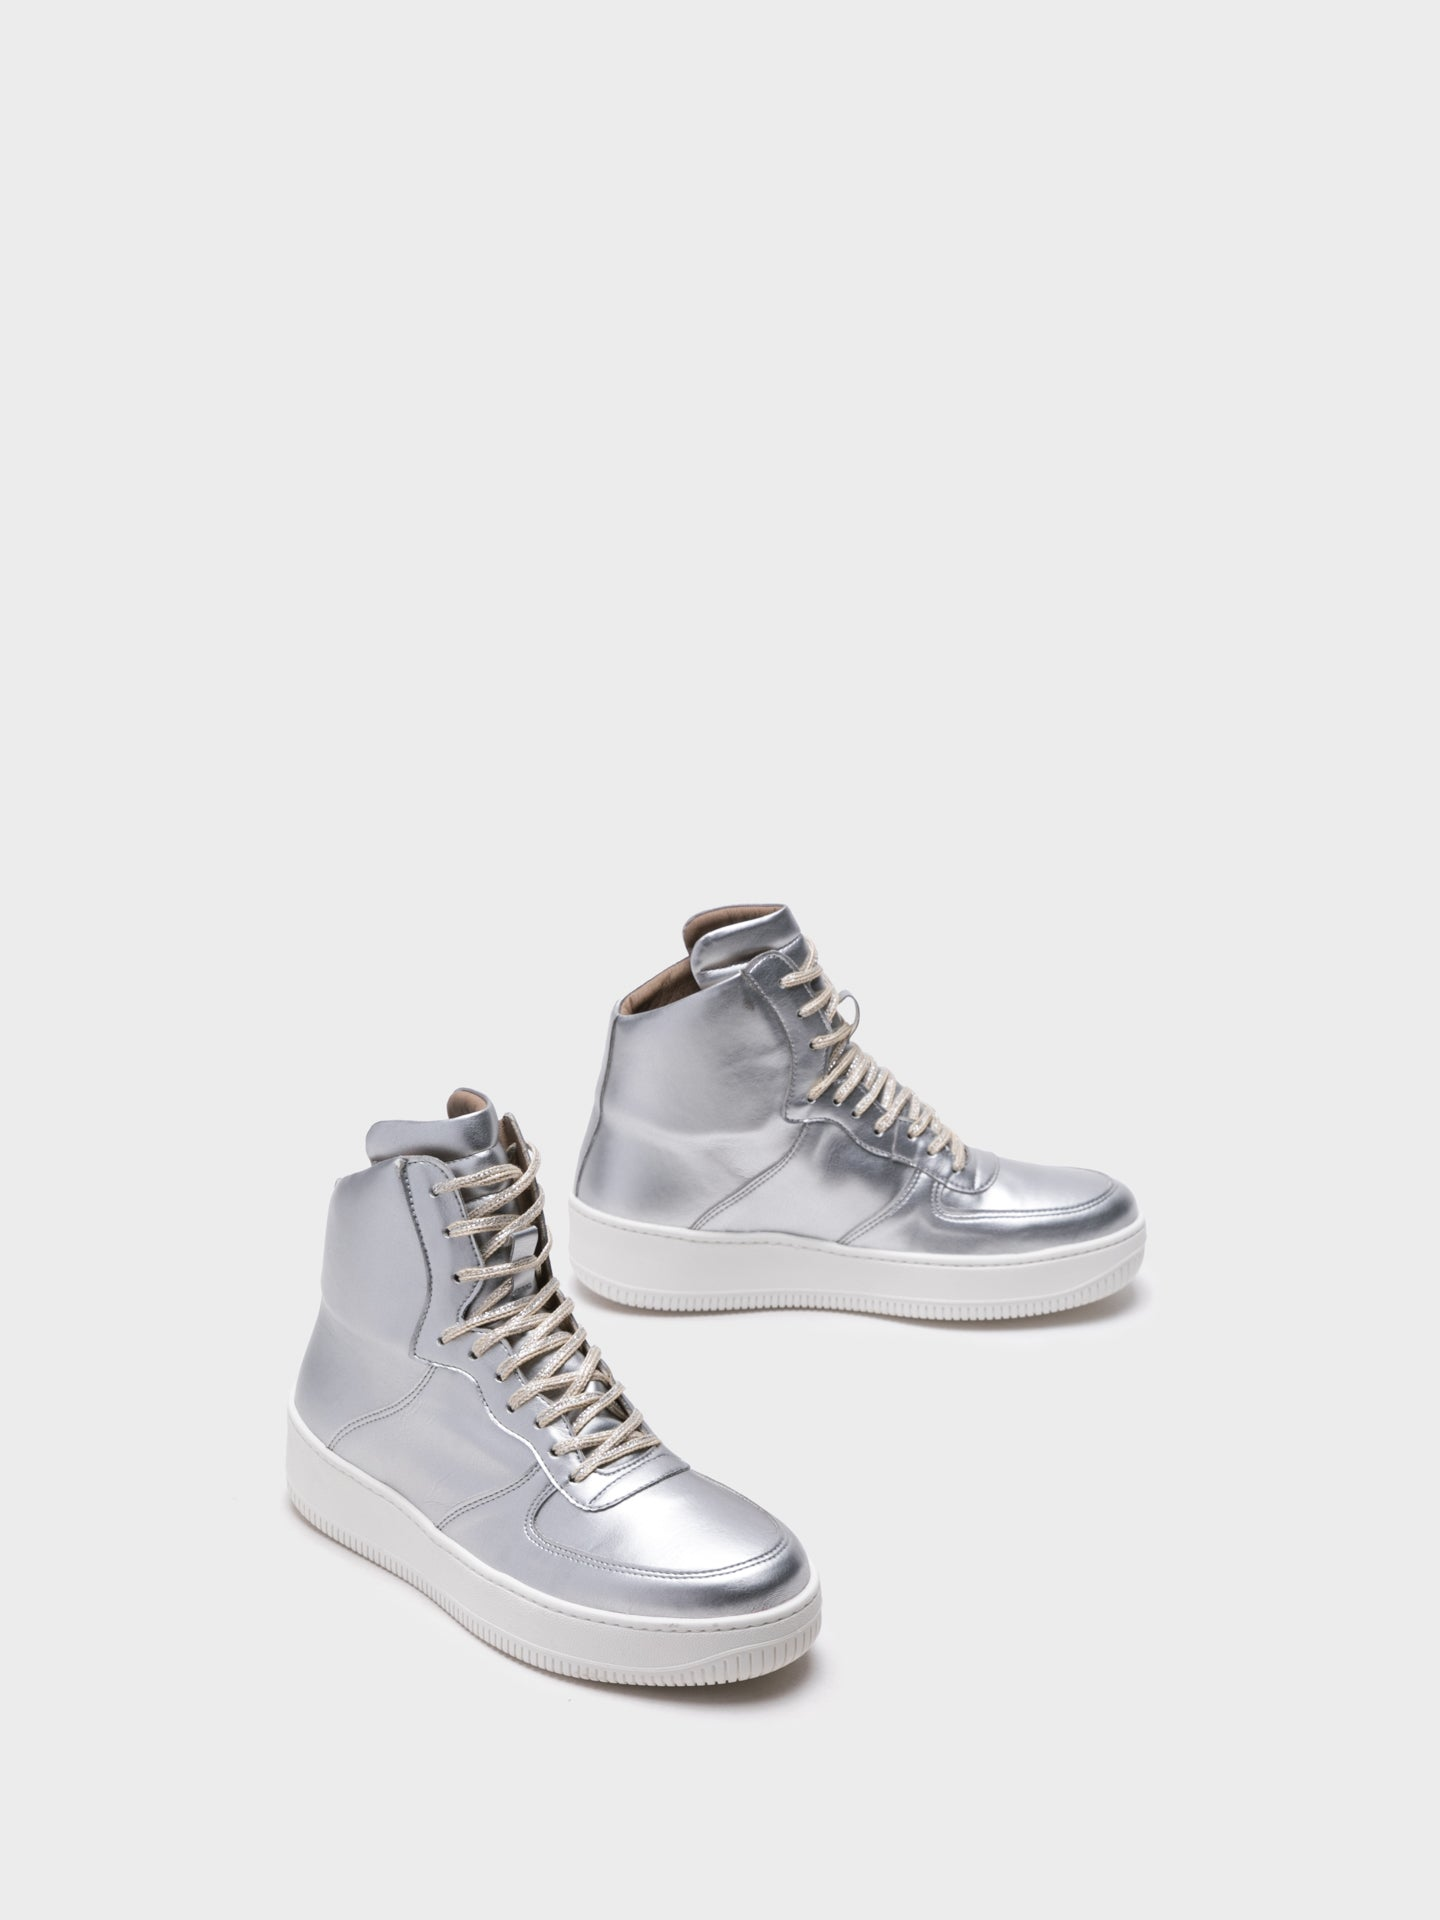 NAE Vegan Shoes Gray Hi-Top Trainers